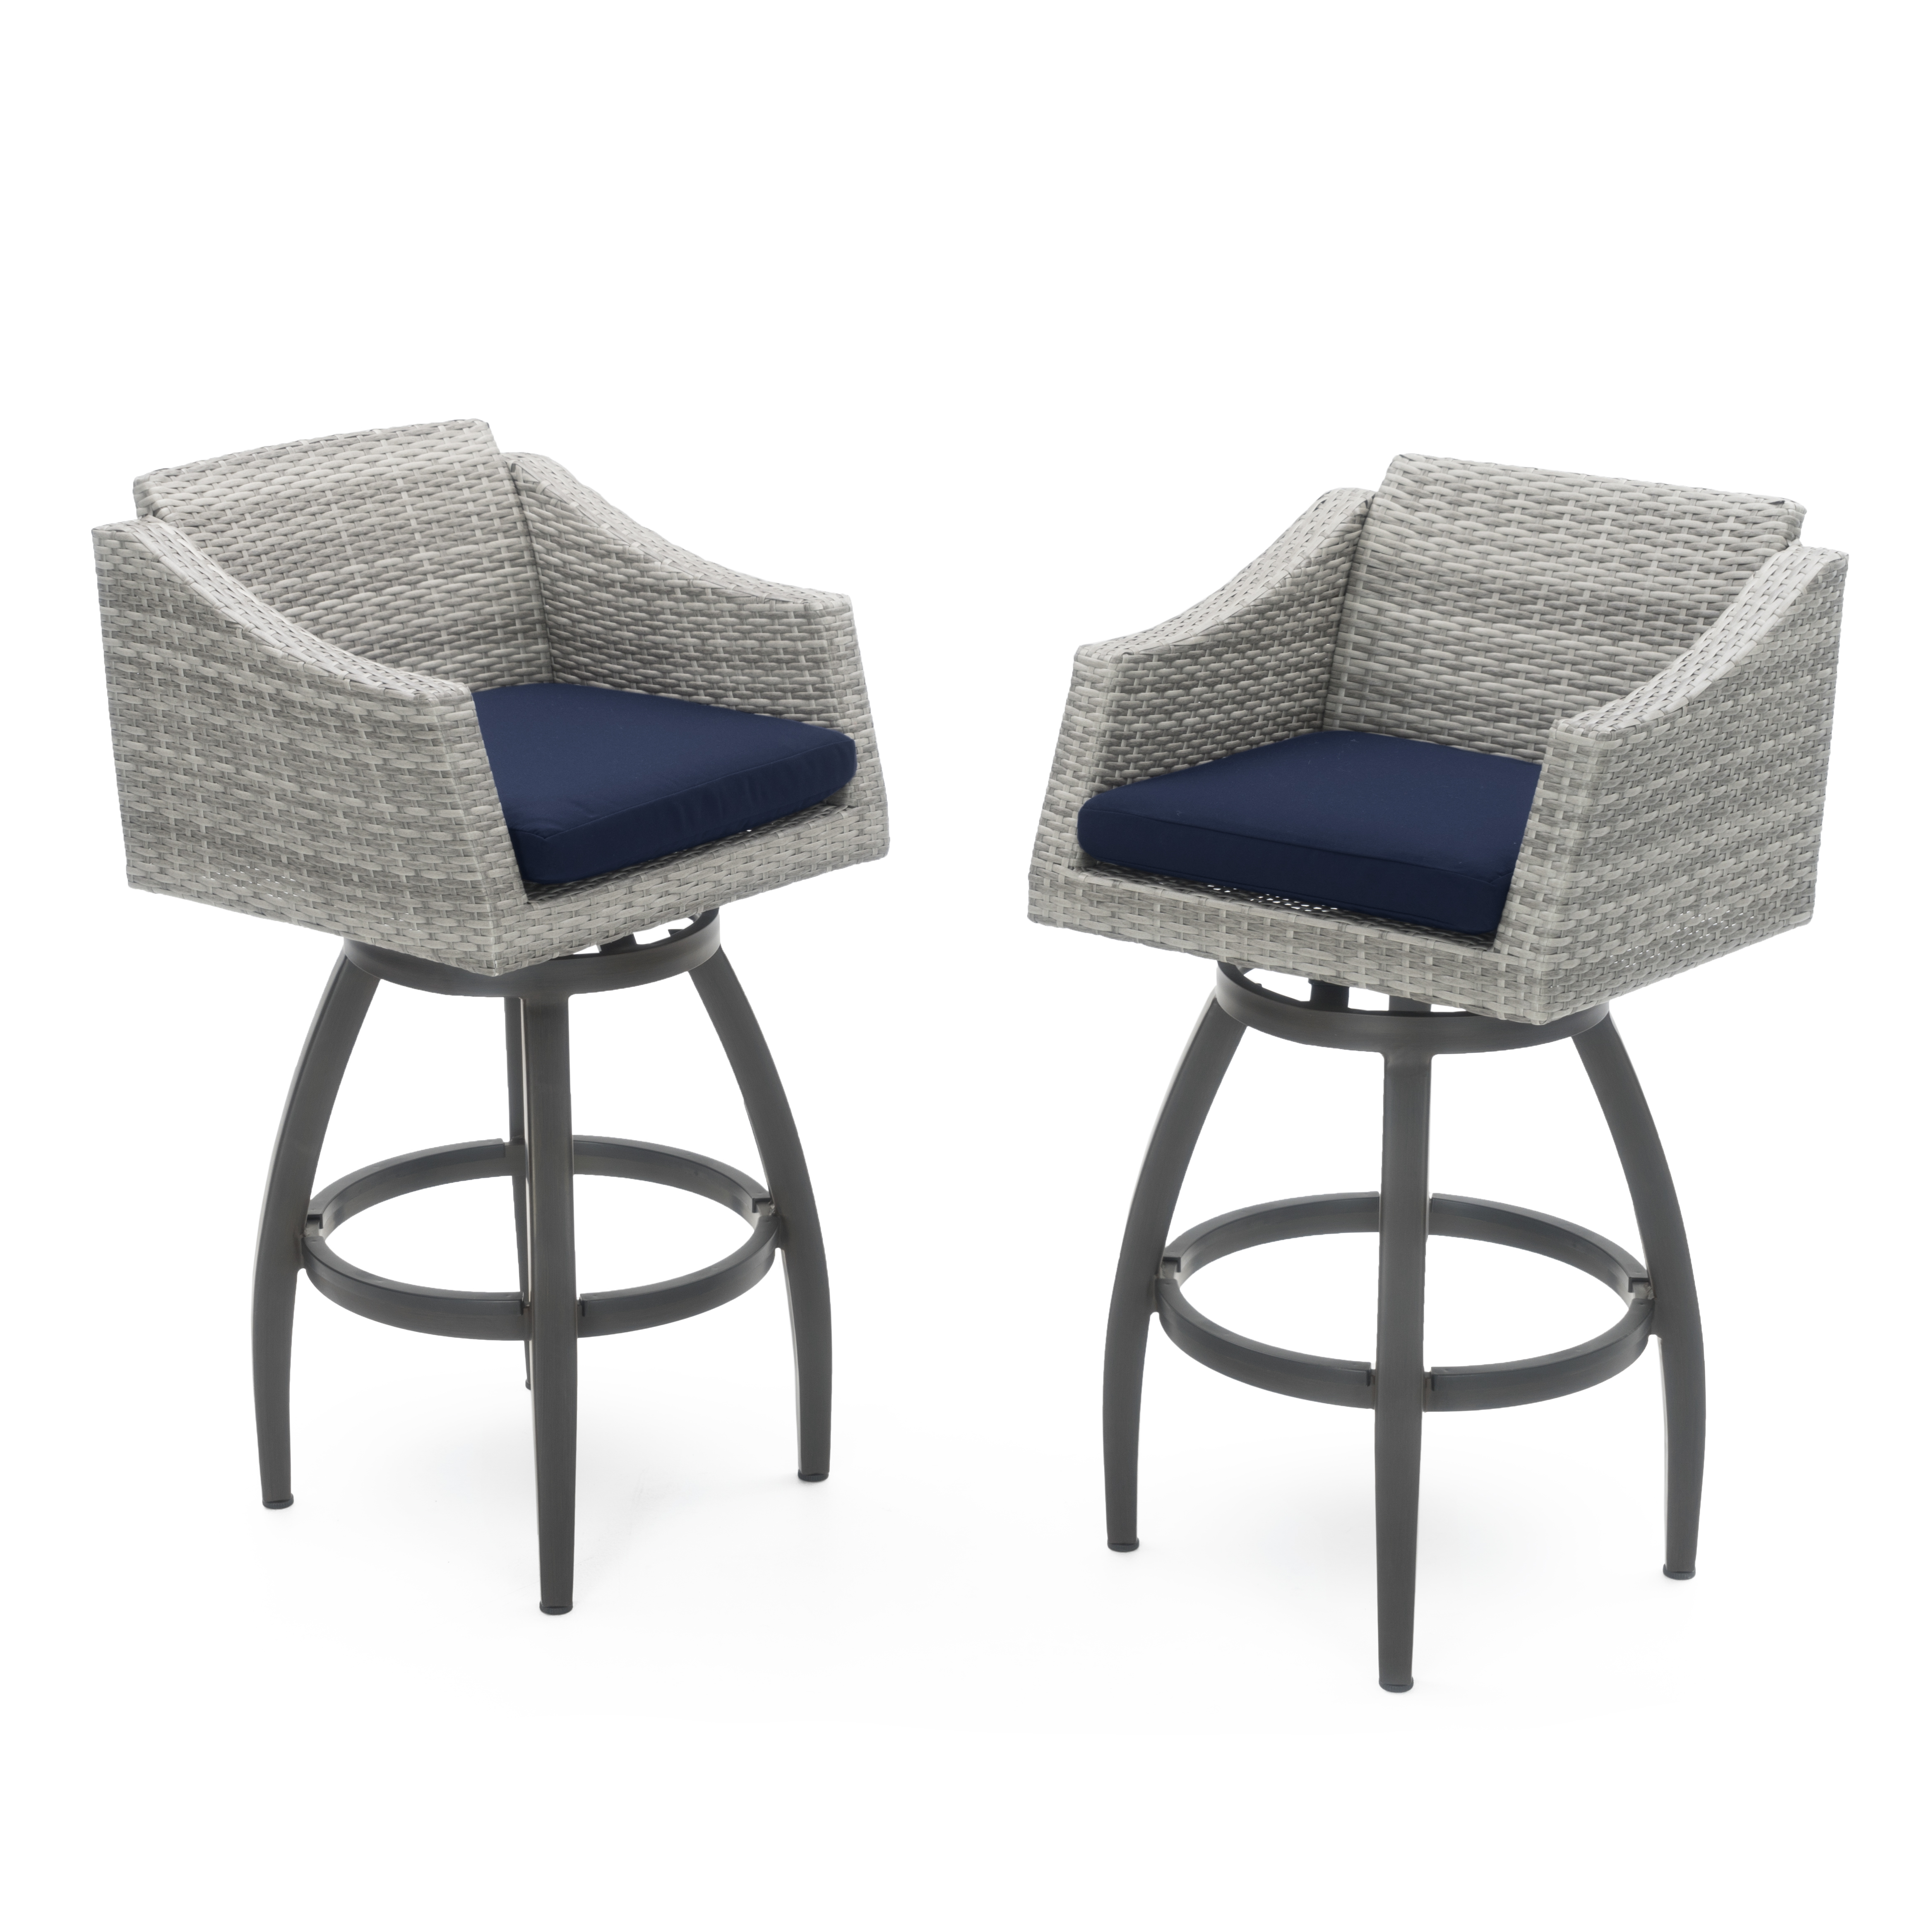 Cannes Set of 2 Swivel Barstools in Sunbrella Navy Blue by RST Brands